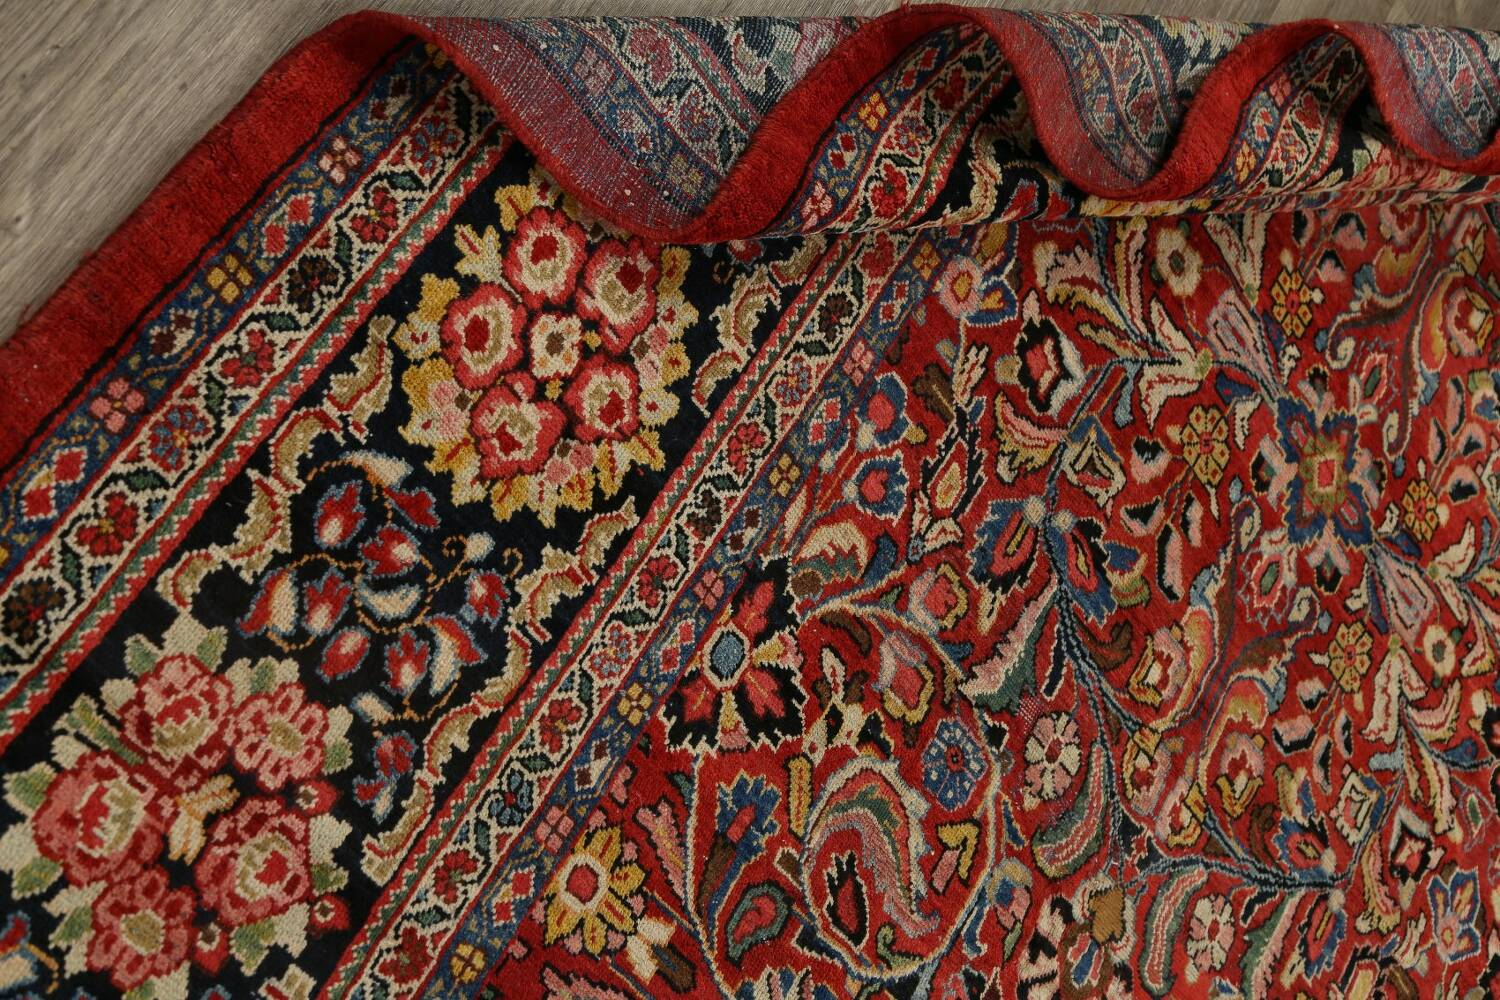 Antique Vegetable Dye Sultanabad Persian Area Rug 10x14 image 22